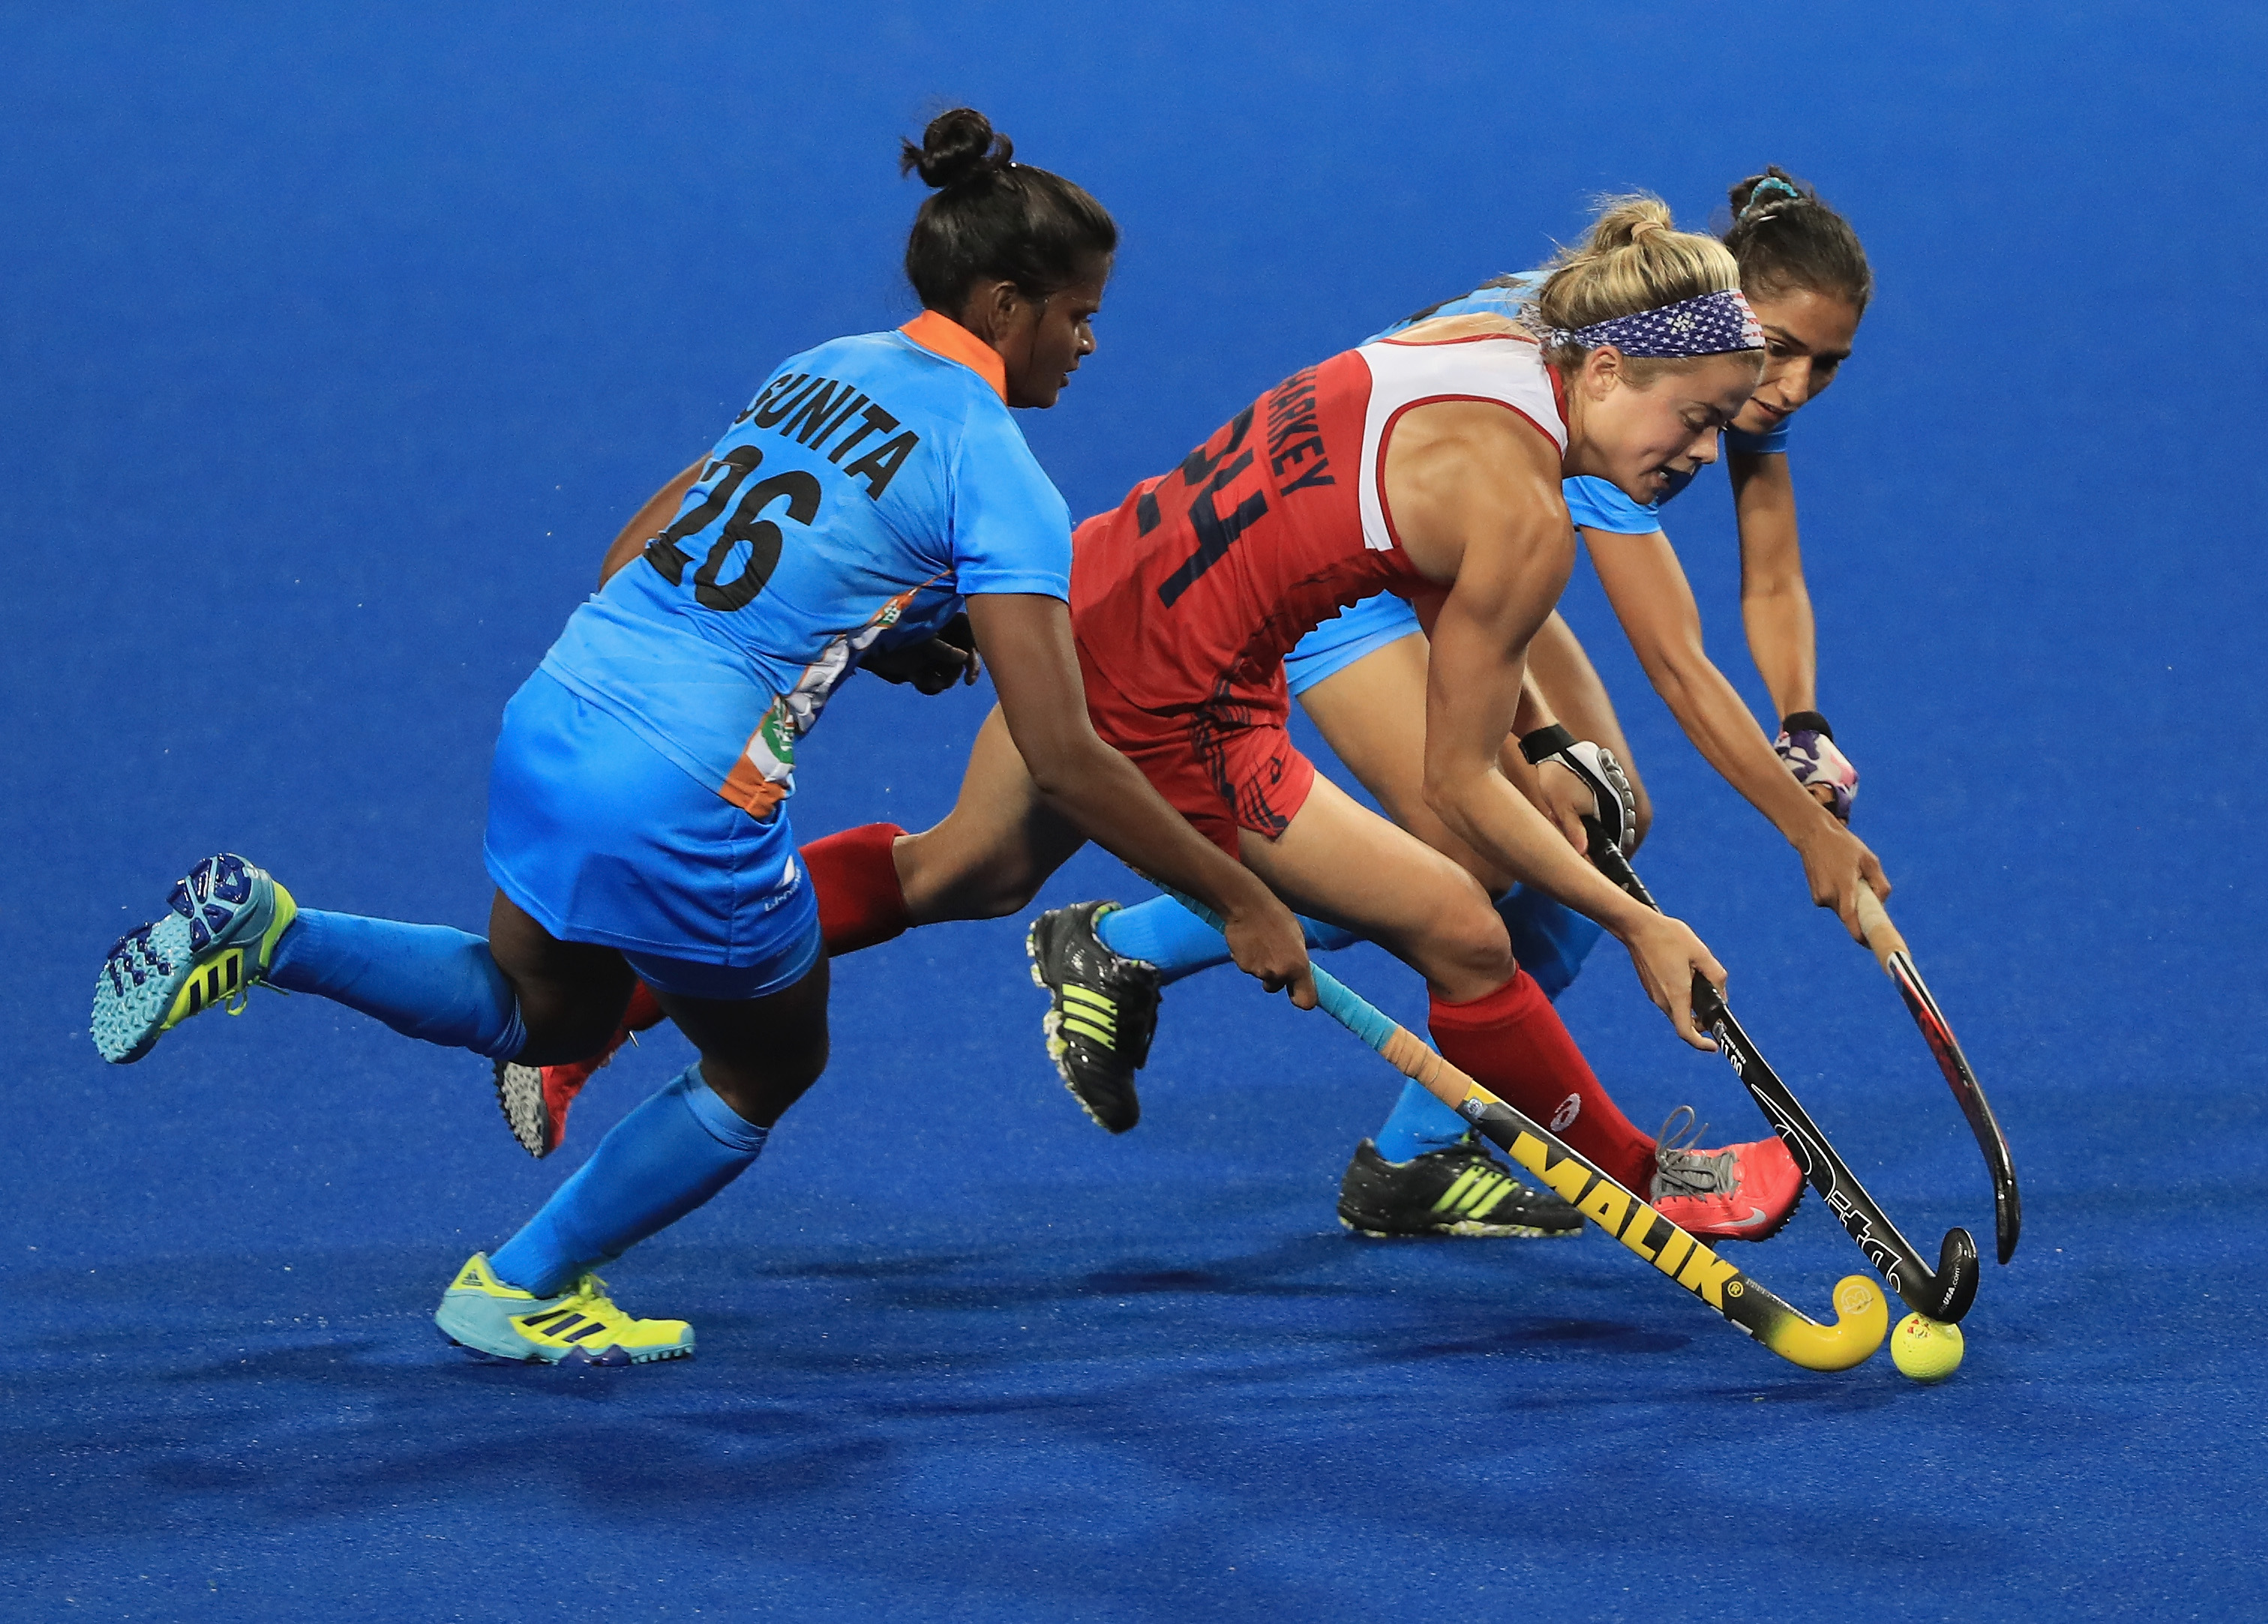 Is Field Hockey the new Curling? Check it out.